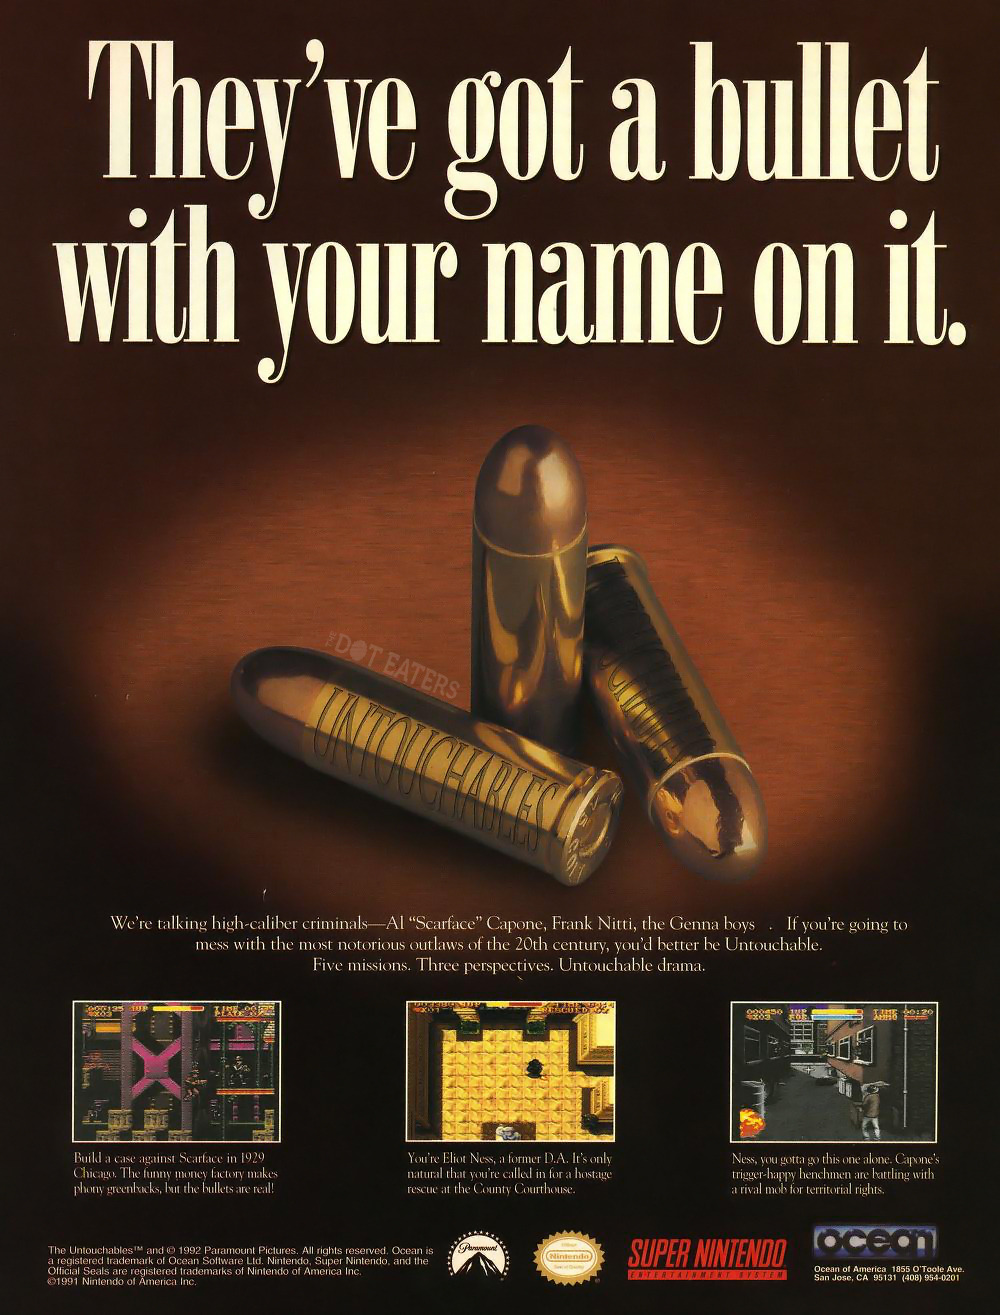 Let's go play some good (games)! (1994) SNES bitstory